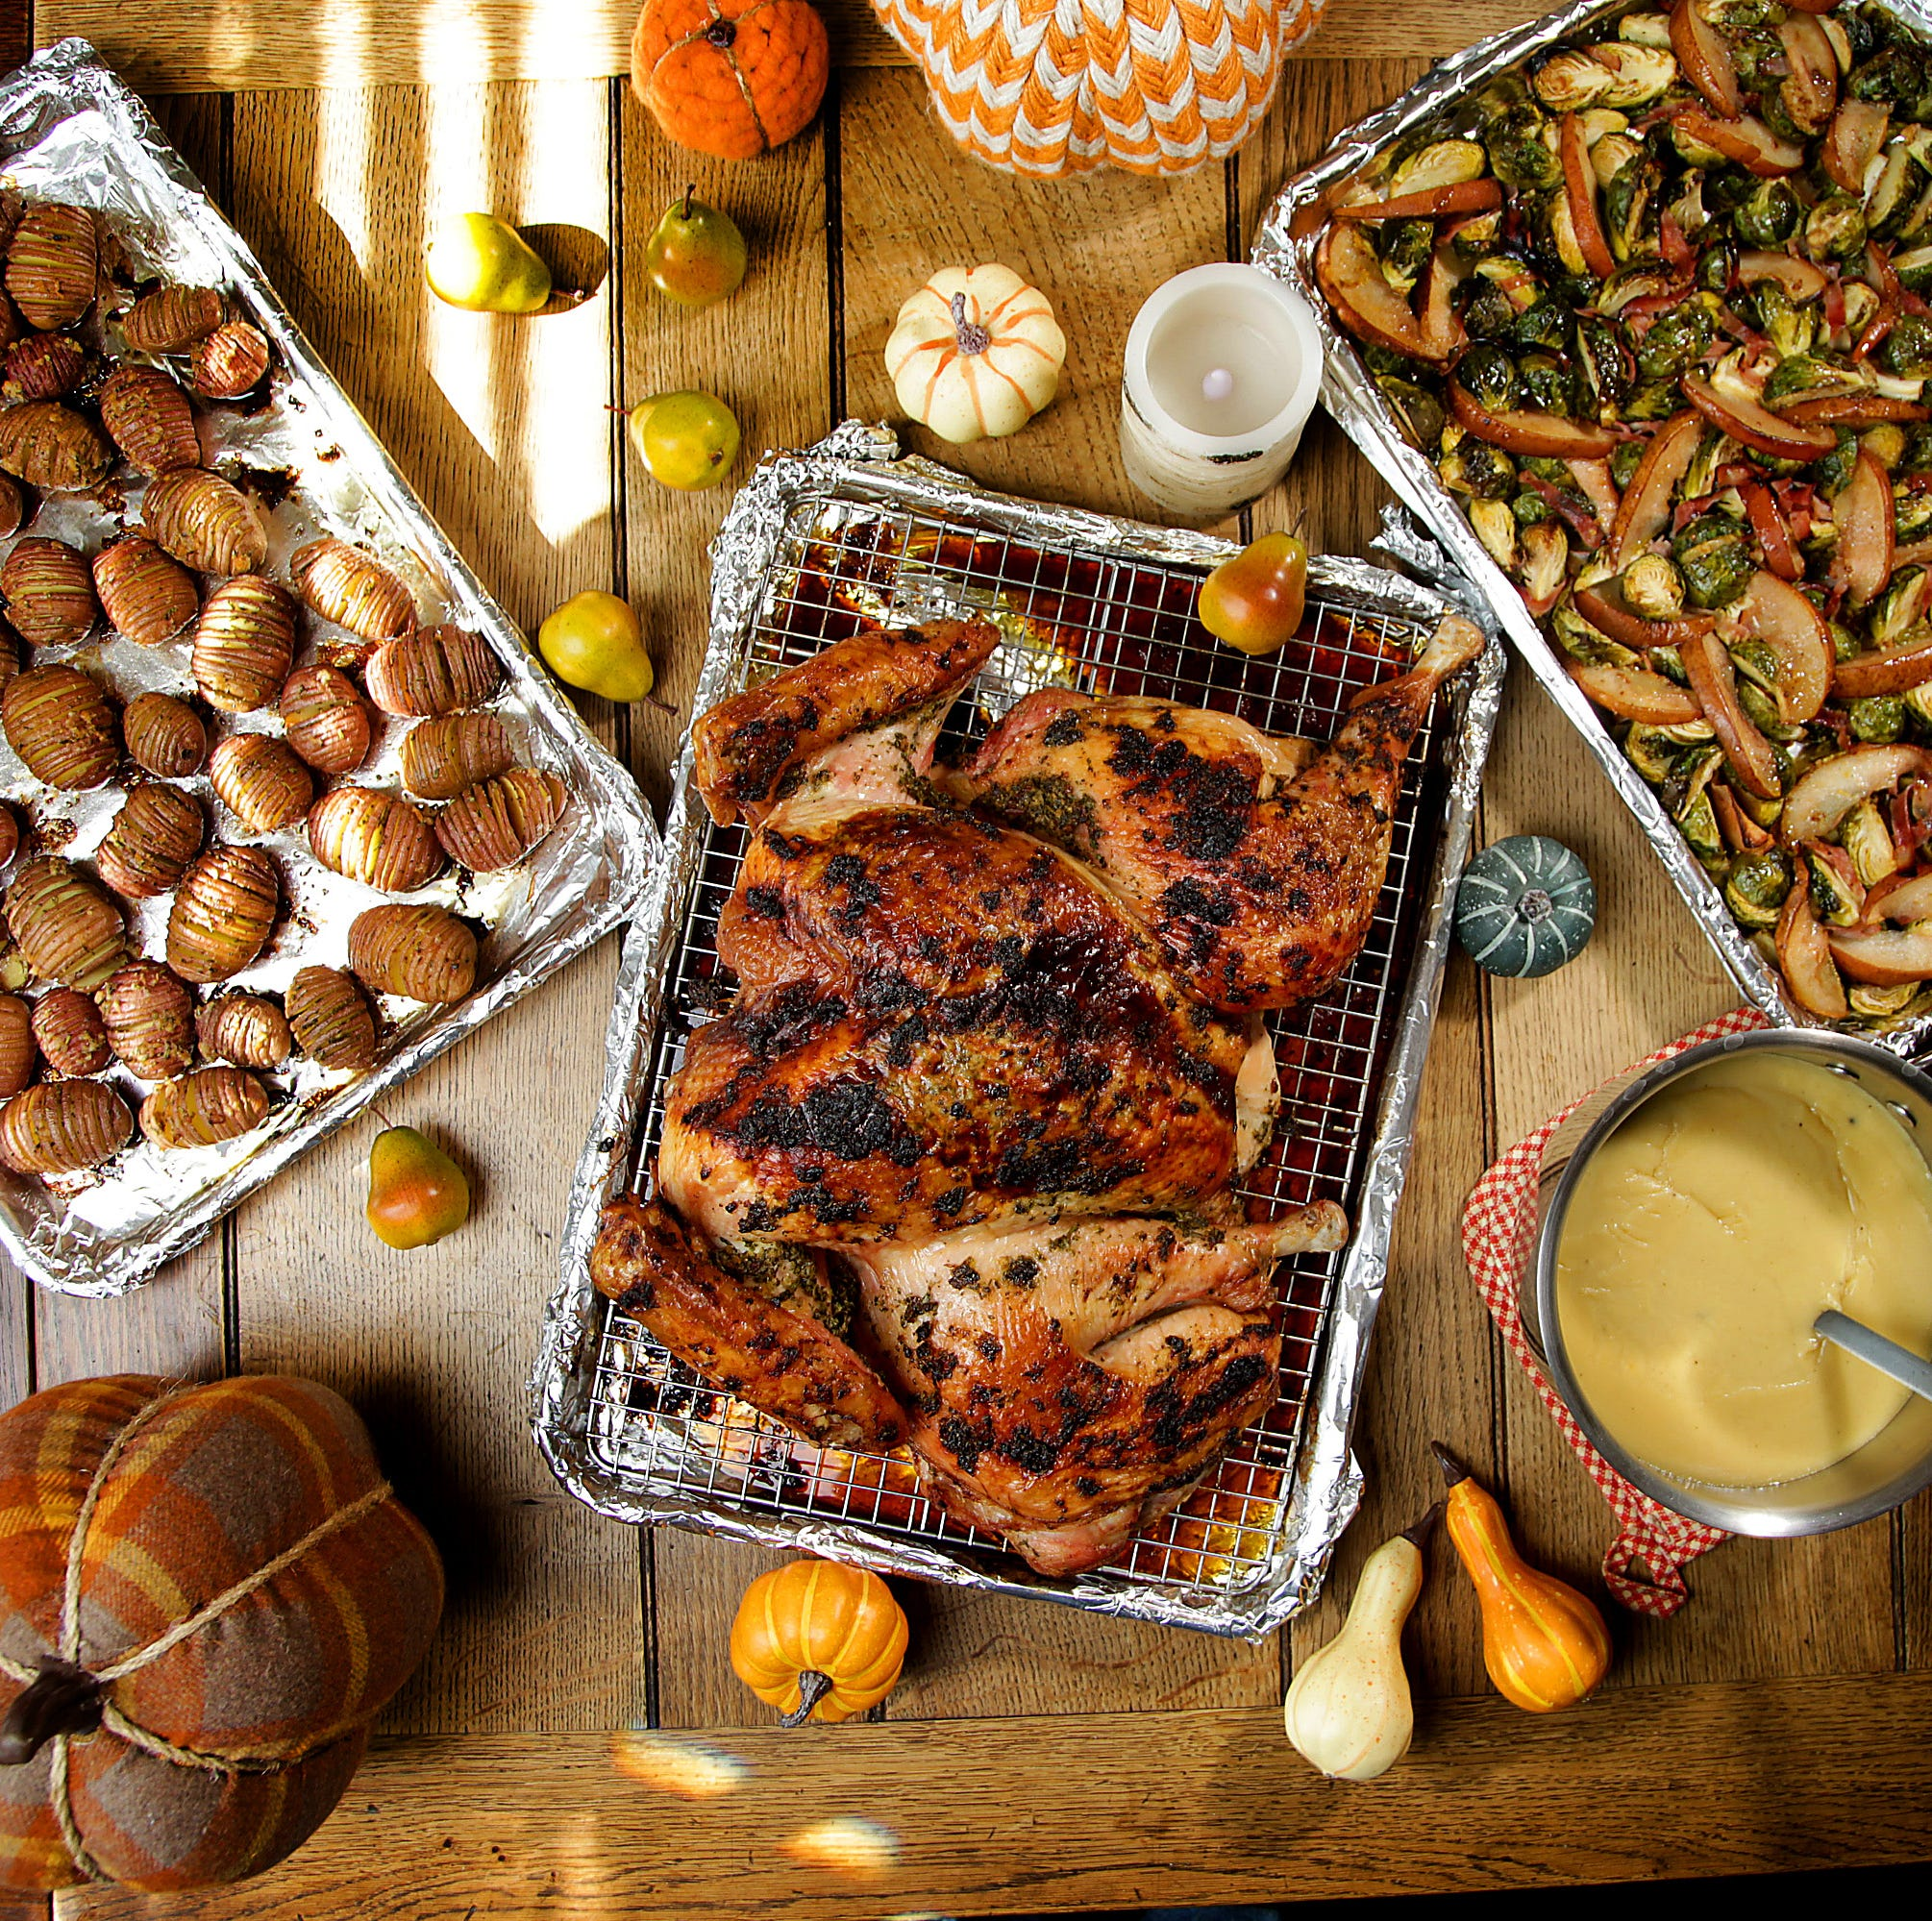 Still planning your Thanksgiving meal? Keep it simple. Cook everything on a sheet pan.